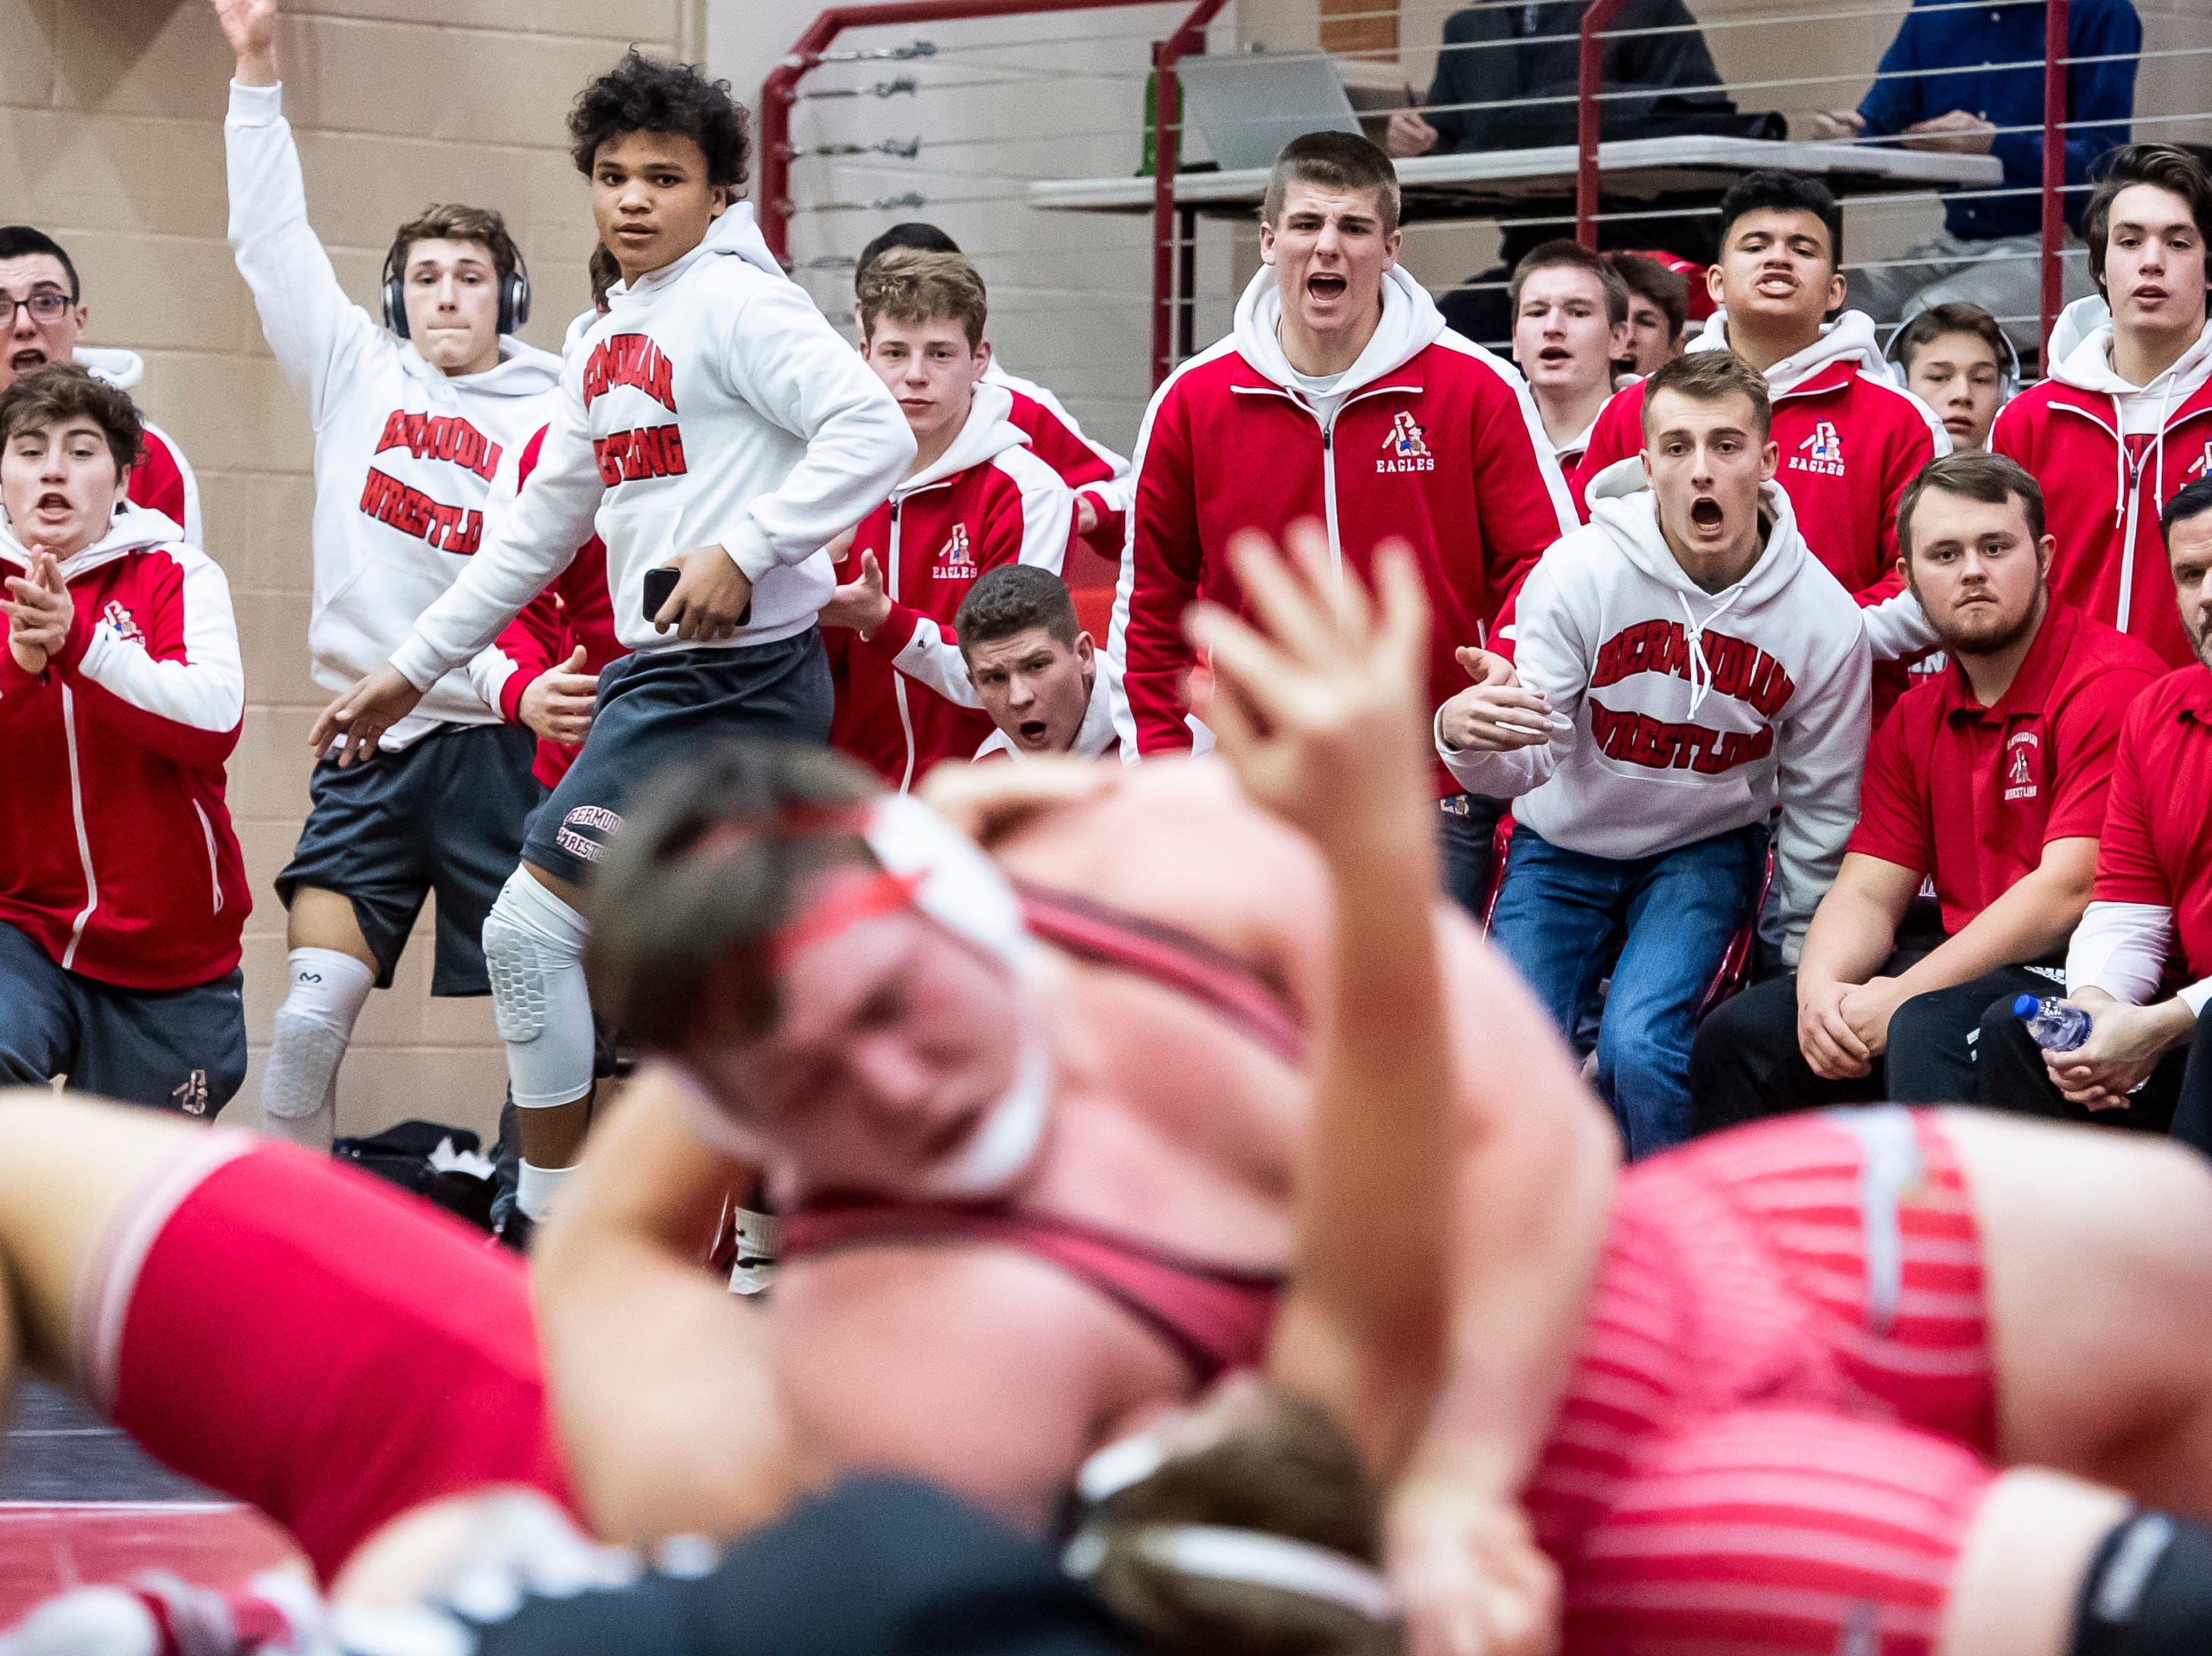 The Bermudian Springs bench reacts as Ryan Lauver gets the pin against Hamburg's Caleb Foote in a 285-pound bout during a PIAA District III 2A semifinal match at Cumberland Valley High School January 31, 2019. The Eagles fell 43-24.